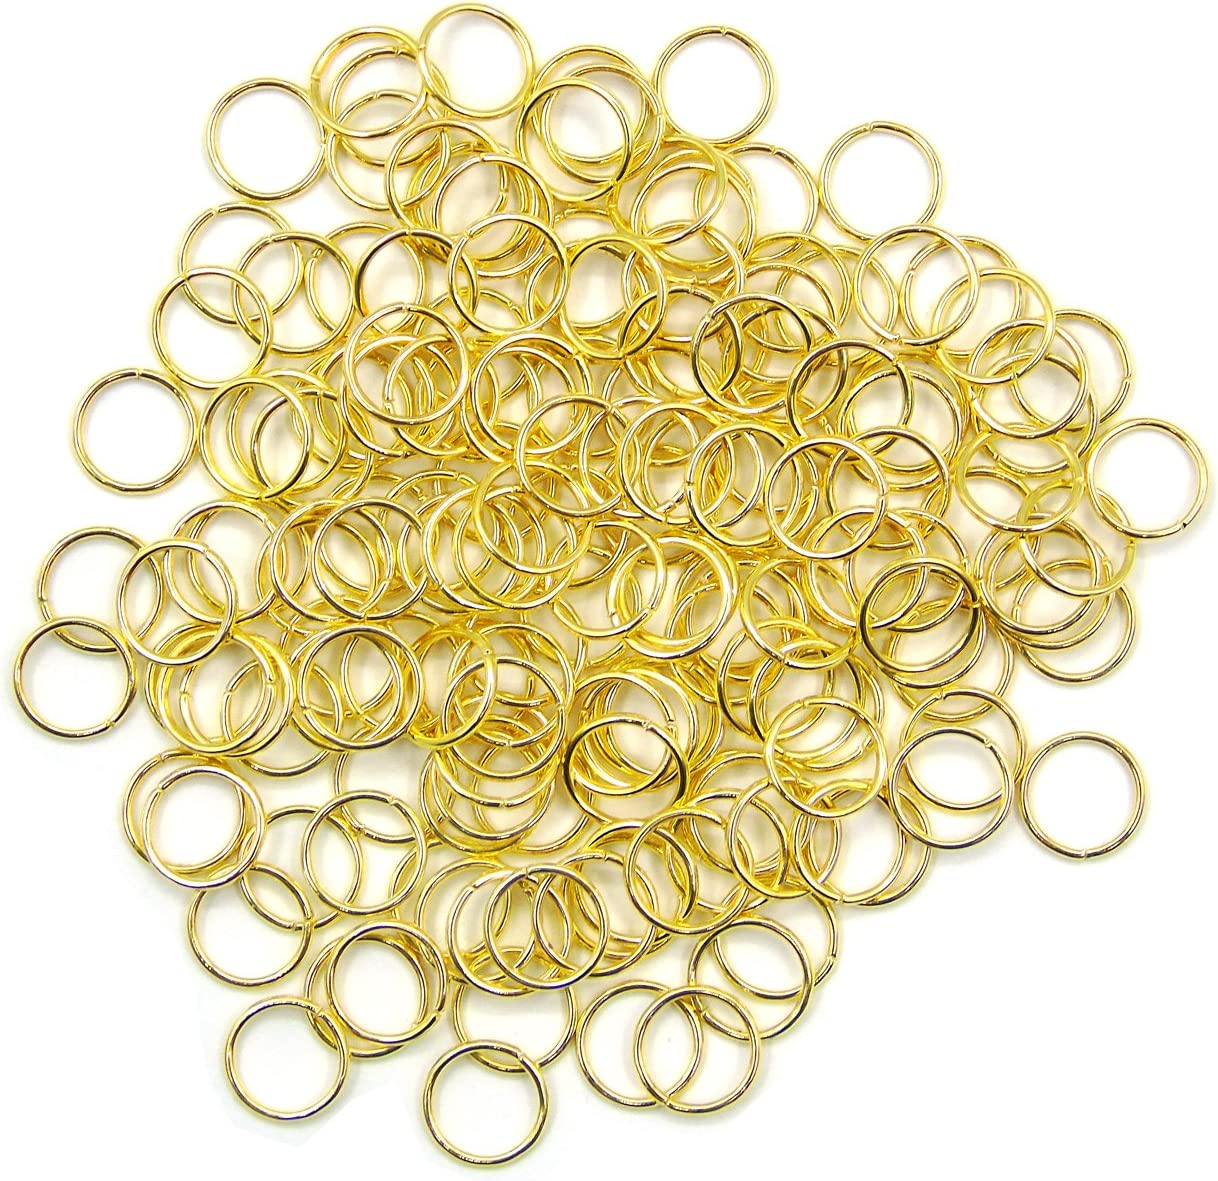 Bronze Hoop 20 Pc Large Open Ring Circle Pendant Twisted Hoop Rings Bronze Jumprings Bronze Jump Rings 10mm Loop Connector